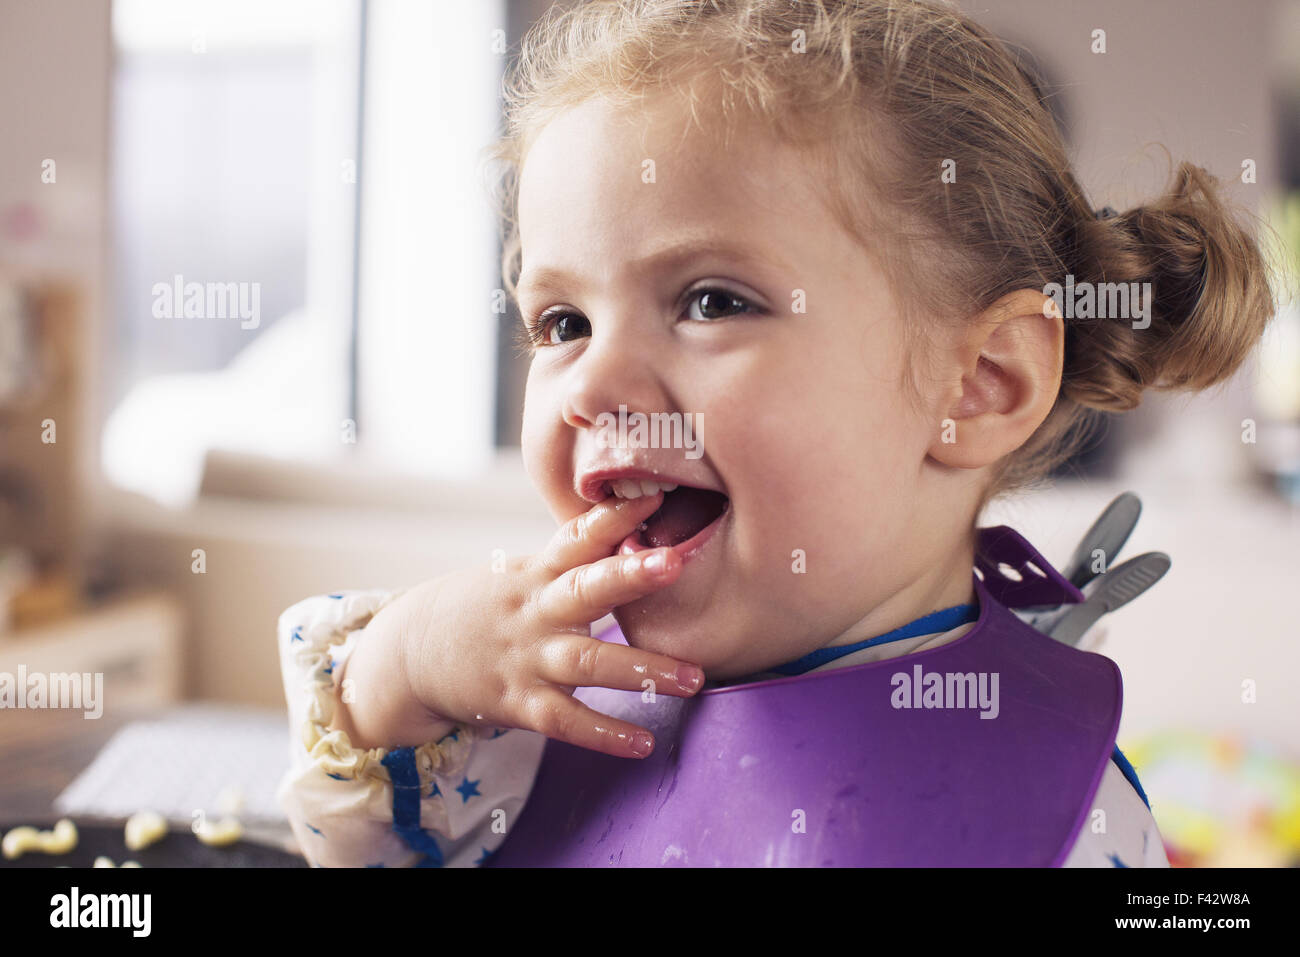 Little girl with fingers in mouth - Stock Image